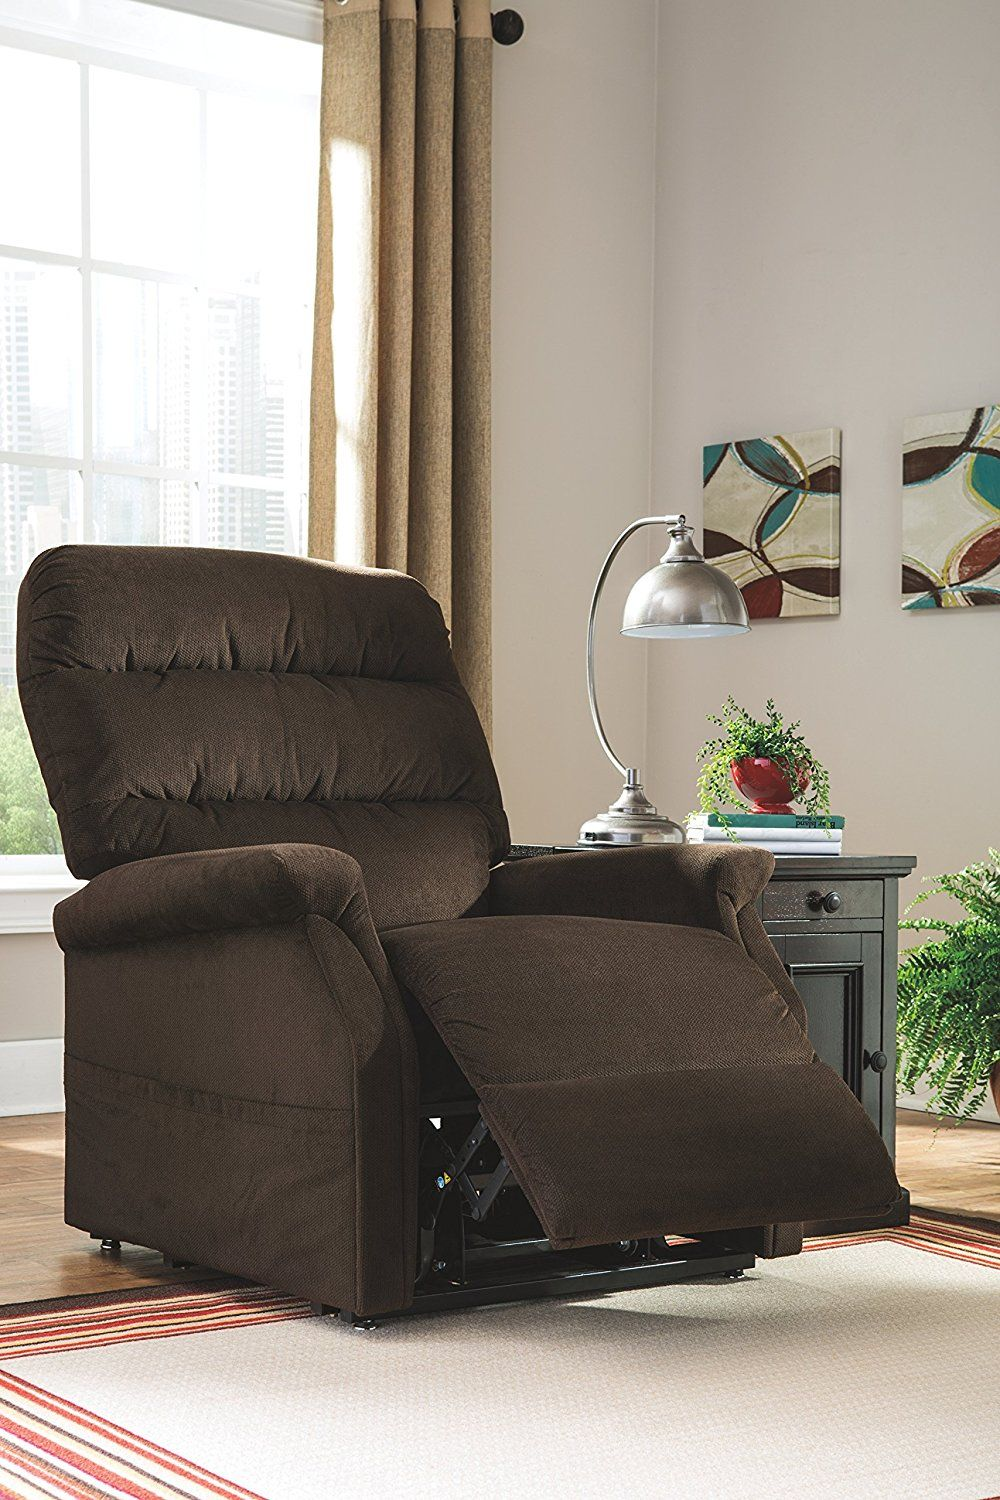 Top 10 Most Comfortable Sofas In 2020 Reviews Comfortable Sofa